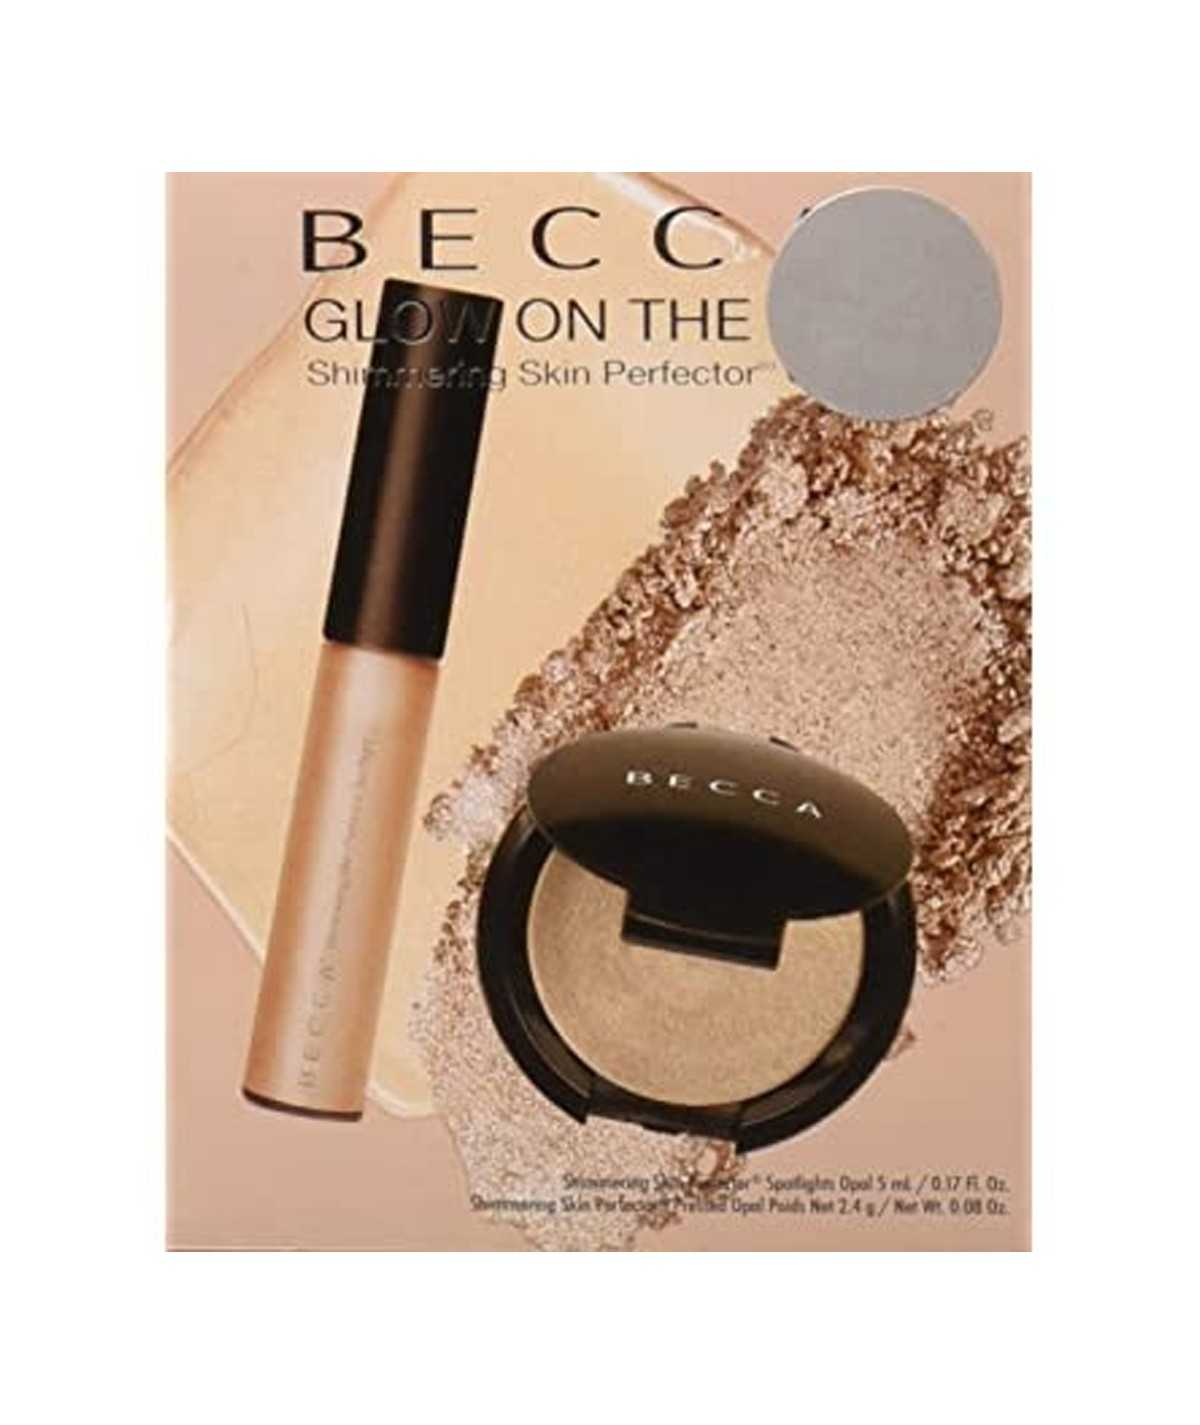 Becca Glow on the glow - Opal